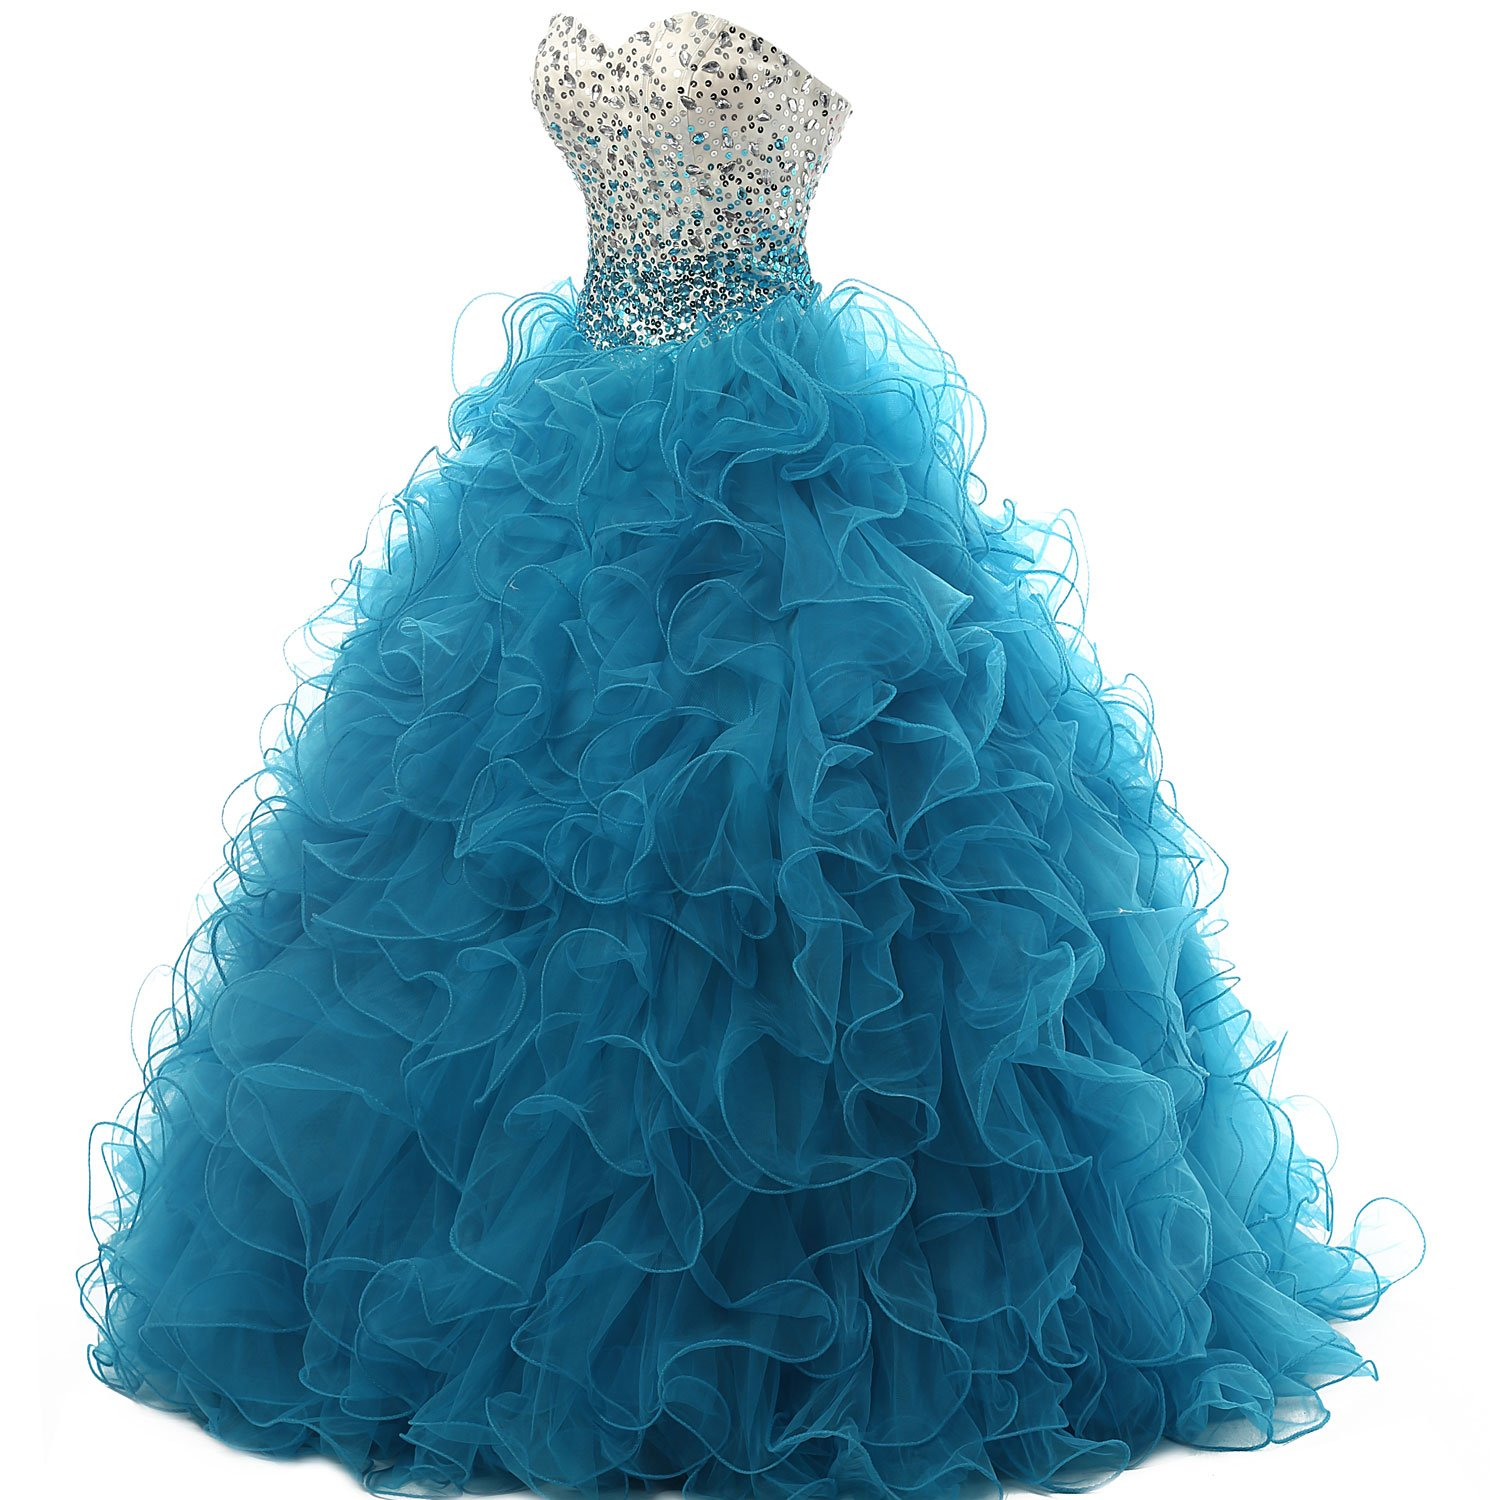 Dressytailor Ballgown Sweetheart Quinceanera Dress Prom Dress with Beading by Artie dress (Image #2)